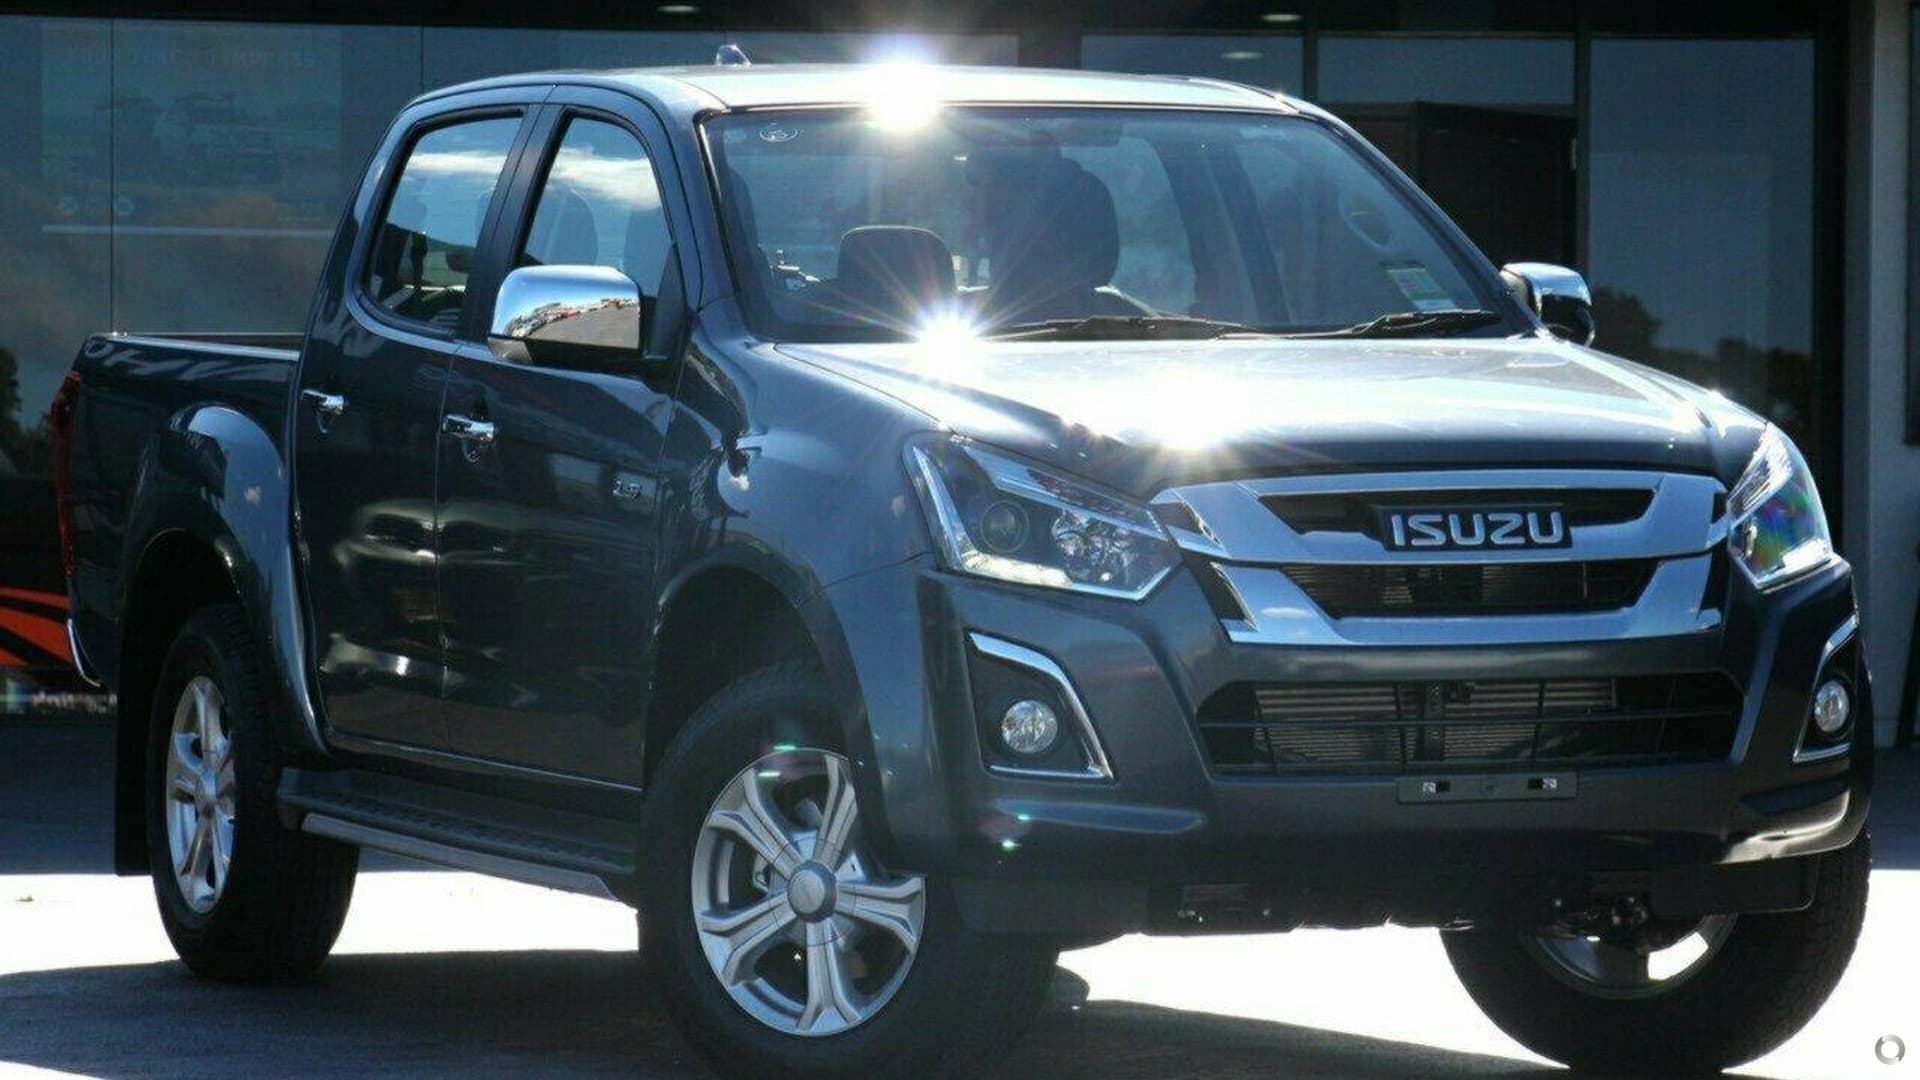 2019 Isuzu D-max Ls-u High Ride